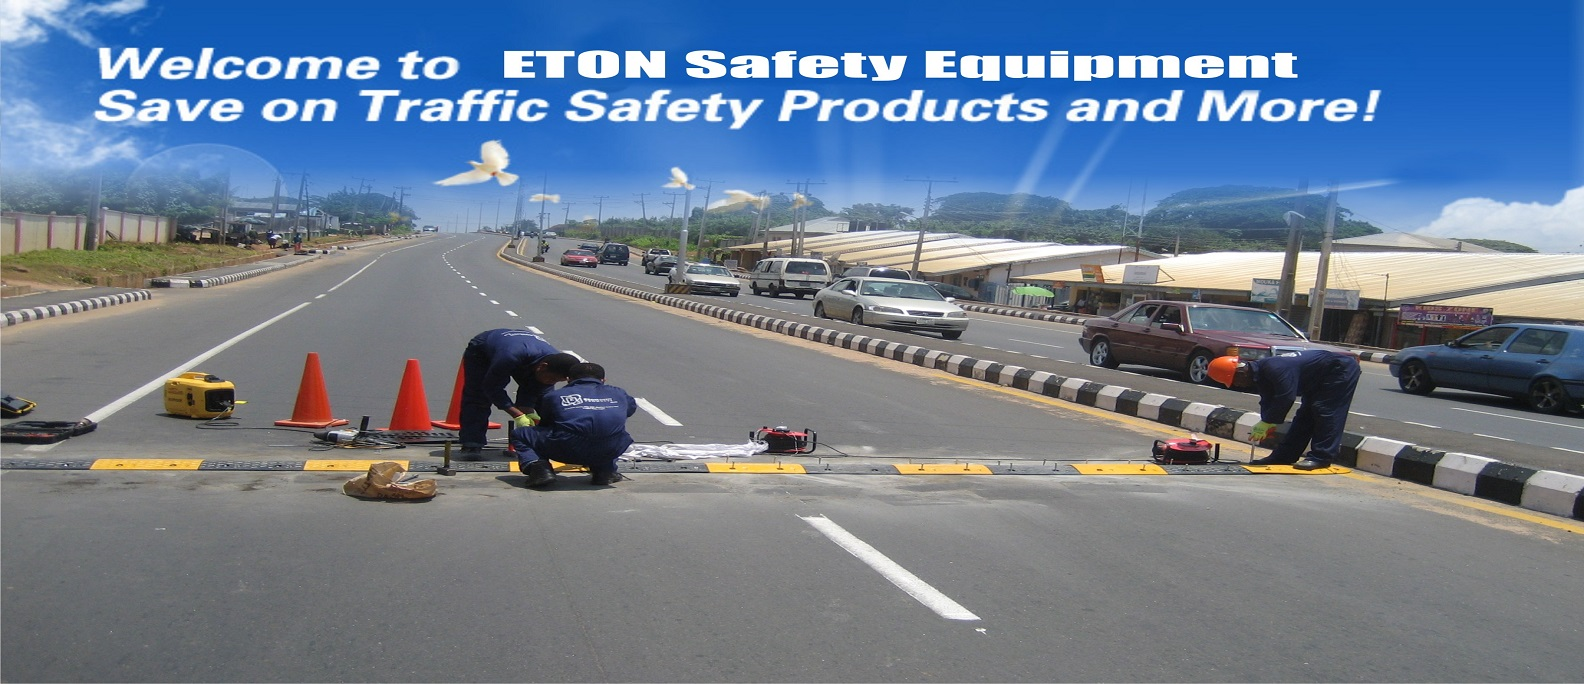 Nigeria's Premier Safety Products Supplier